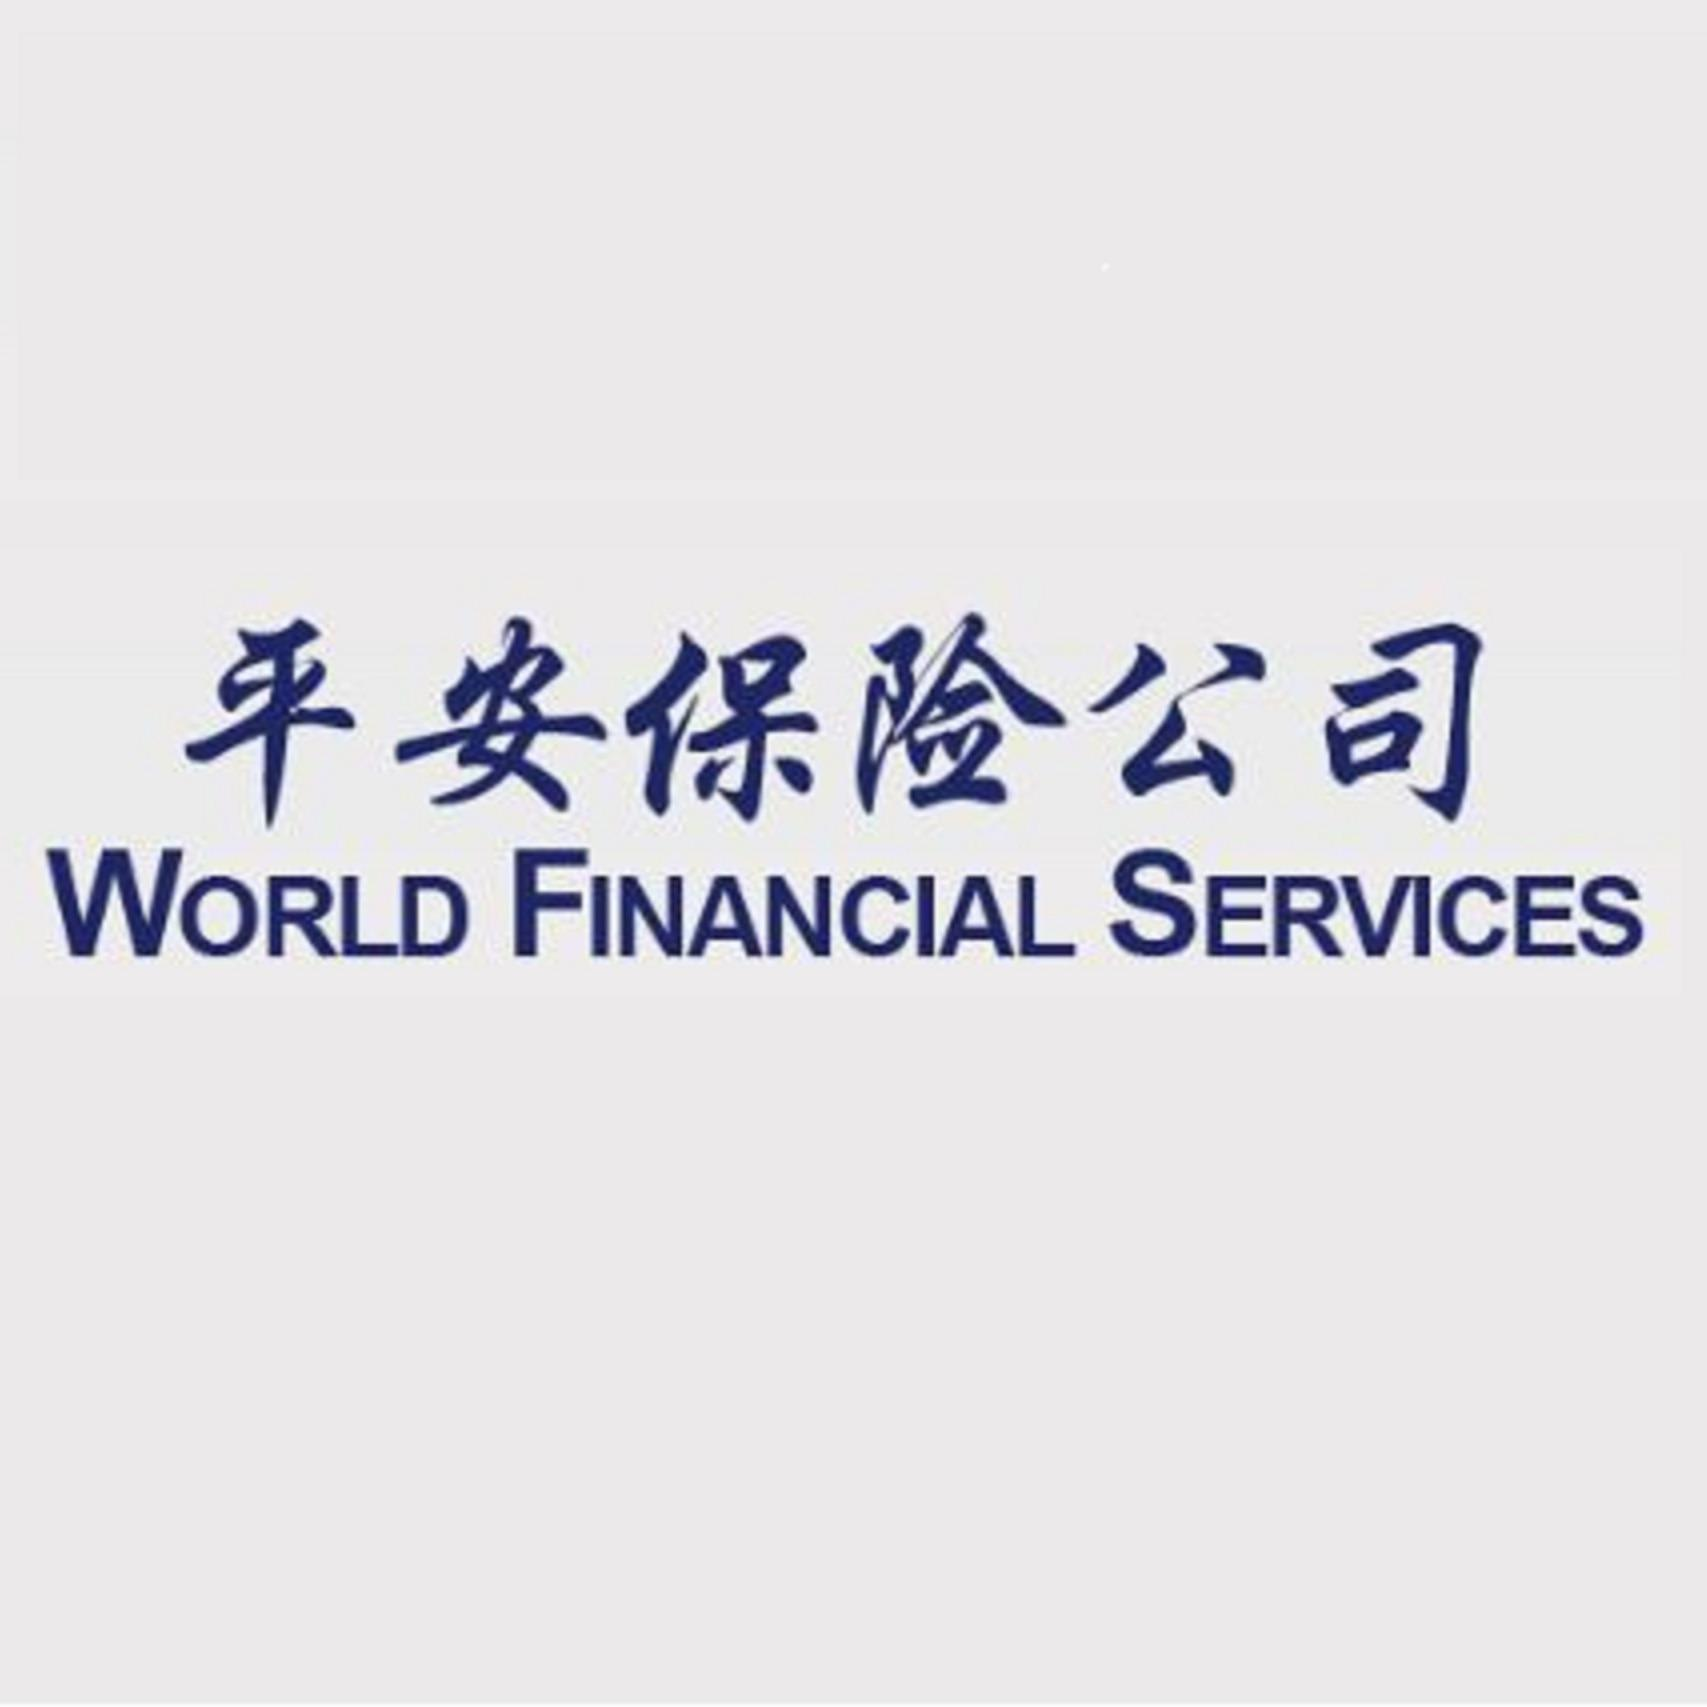 World Financial Services